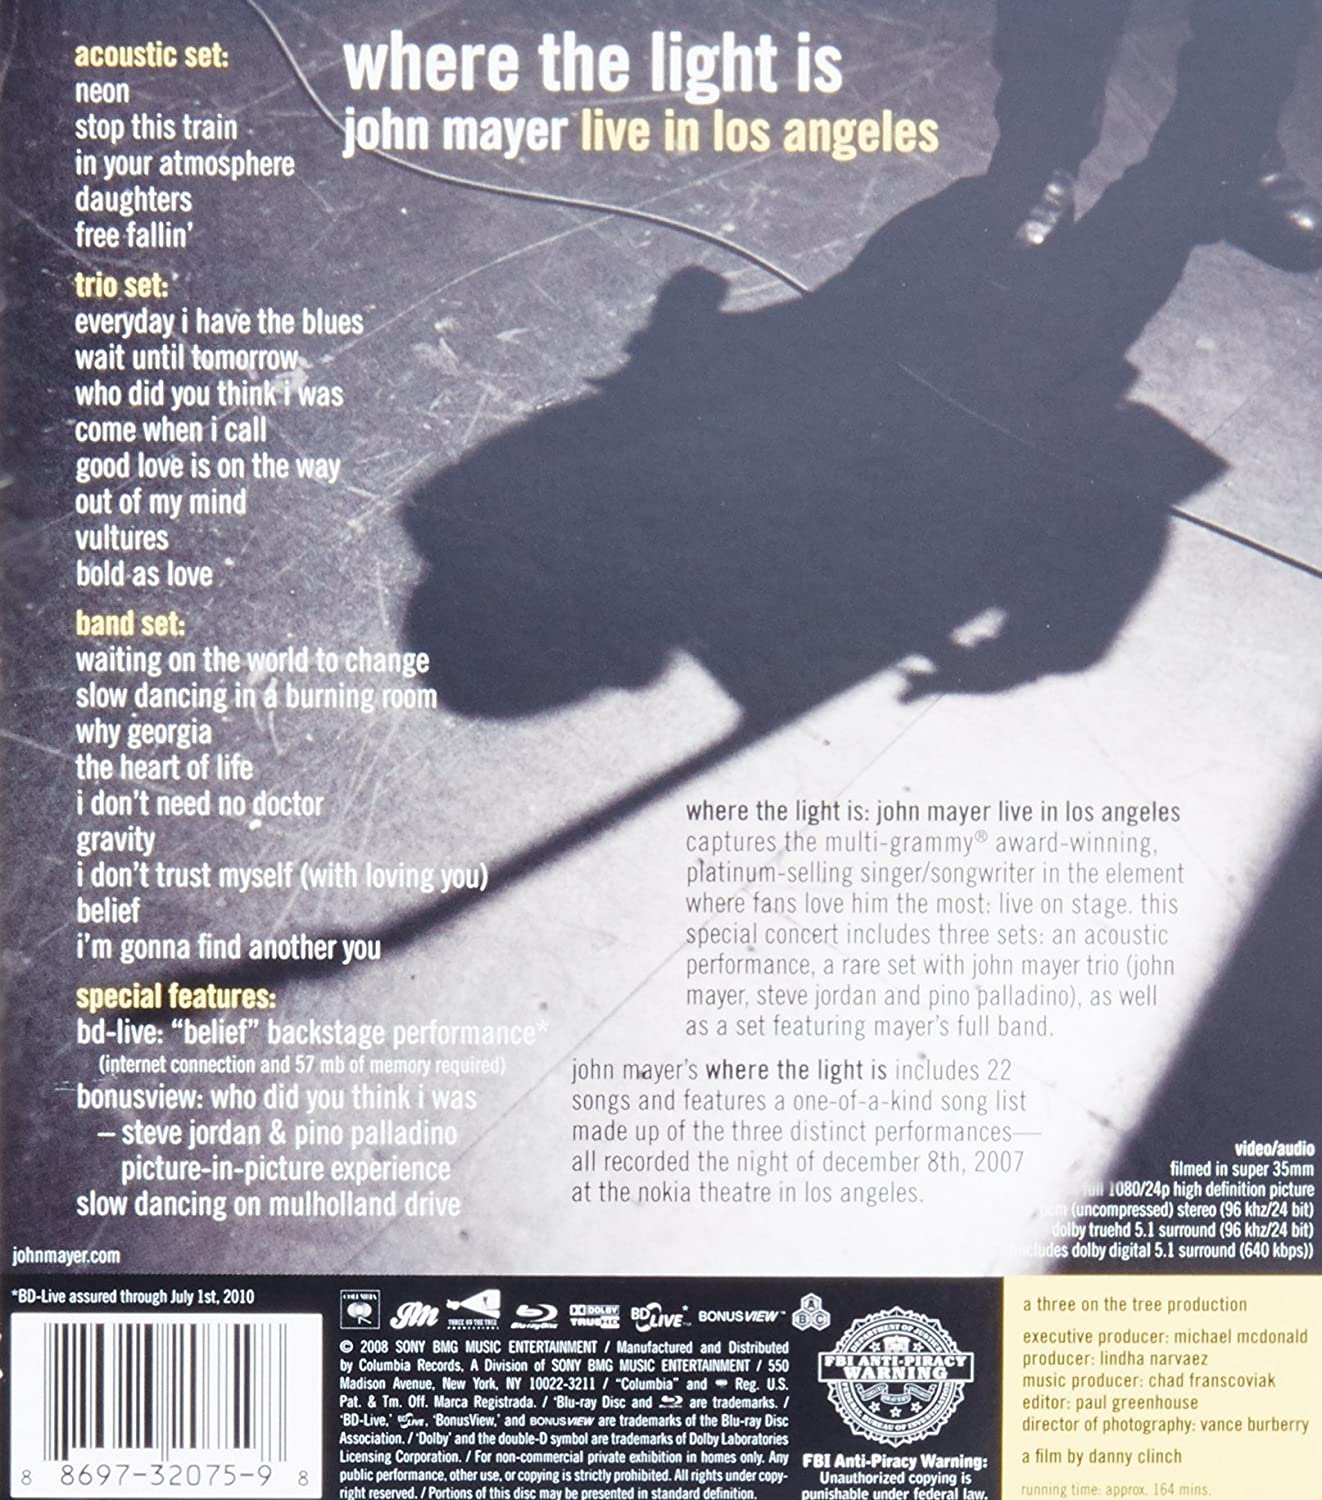 Amazon.com: John Mayer: Where the Light Is - Live in Los Angeles ...